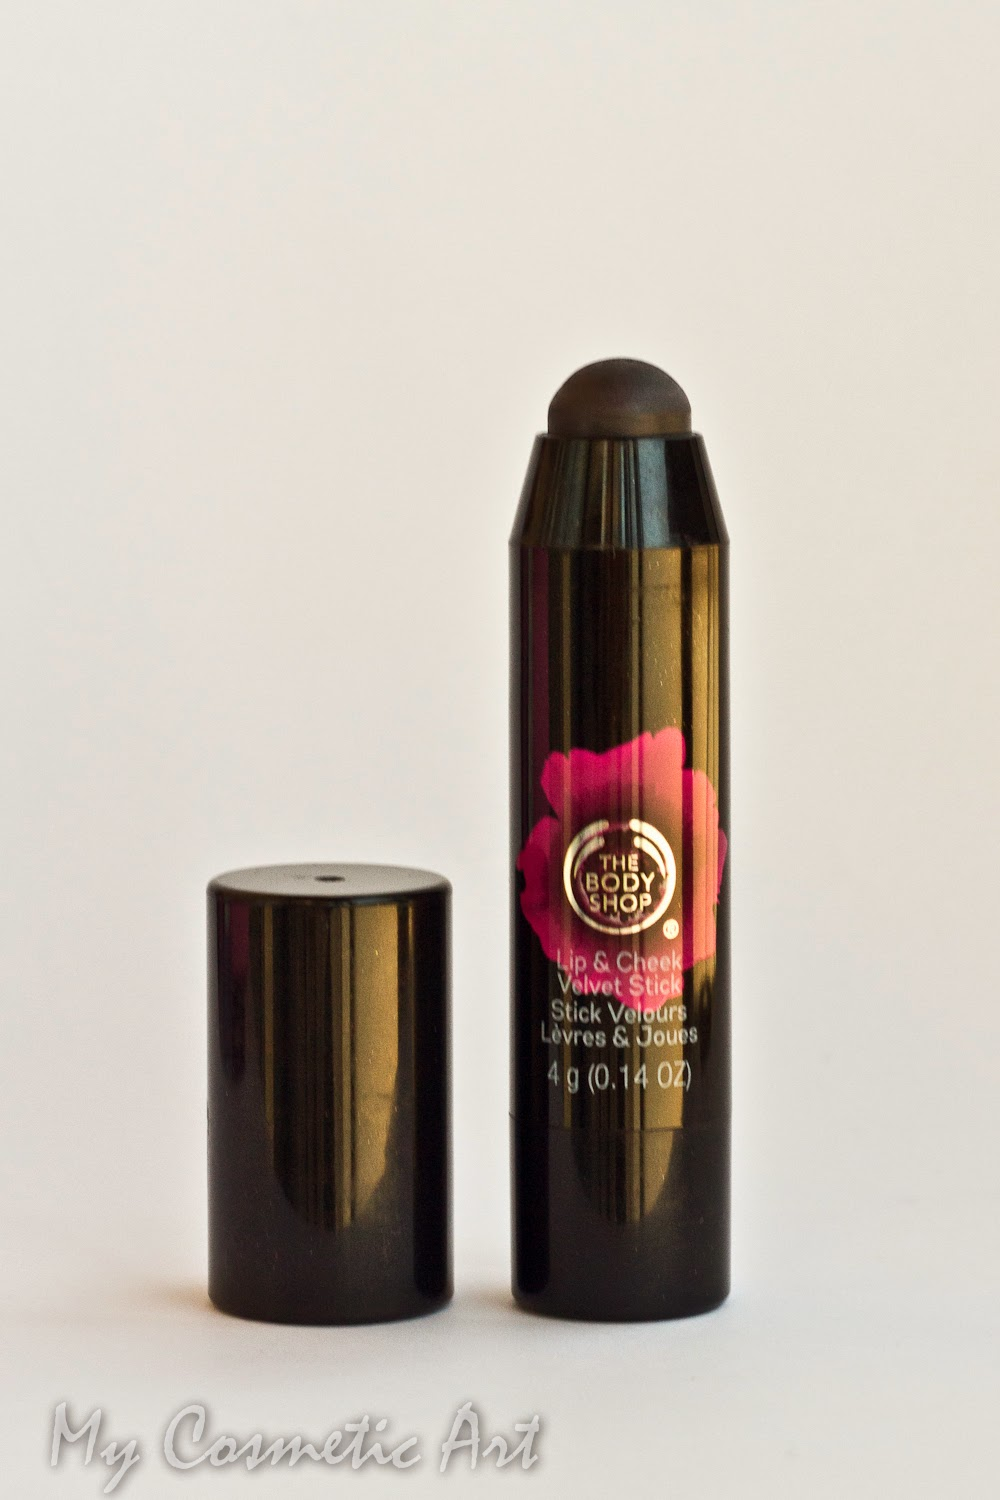 Stick Velvet Poppy Universal de The Body Shop, para labios y mejillas.